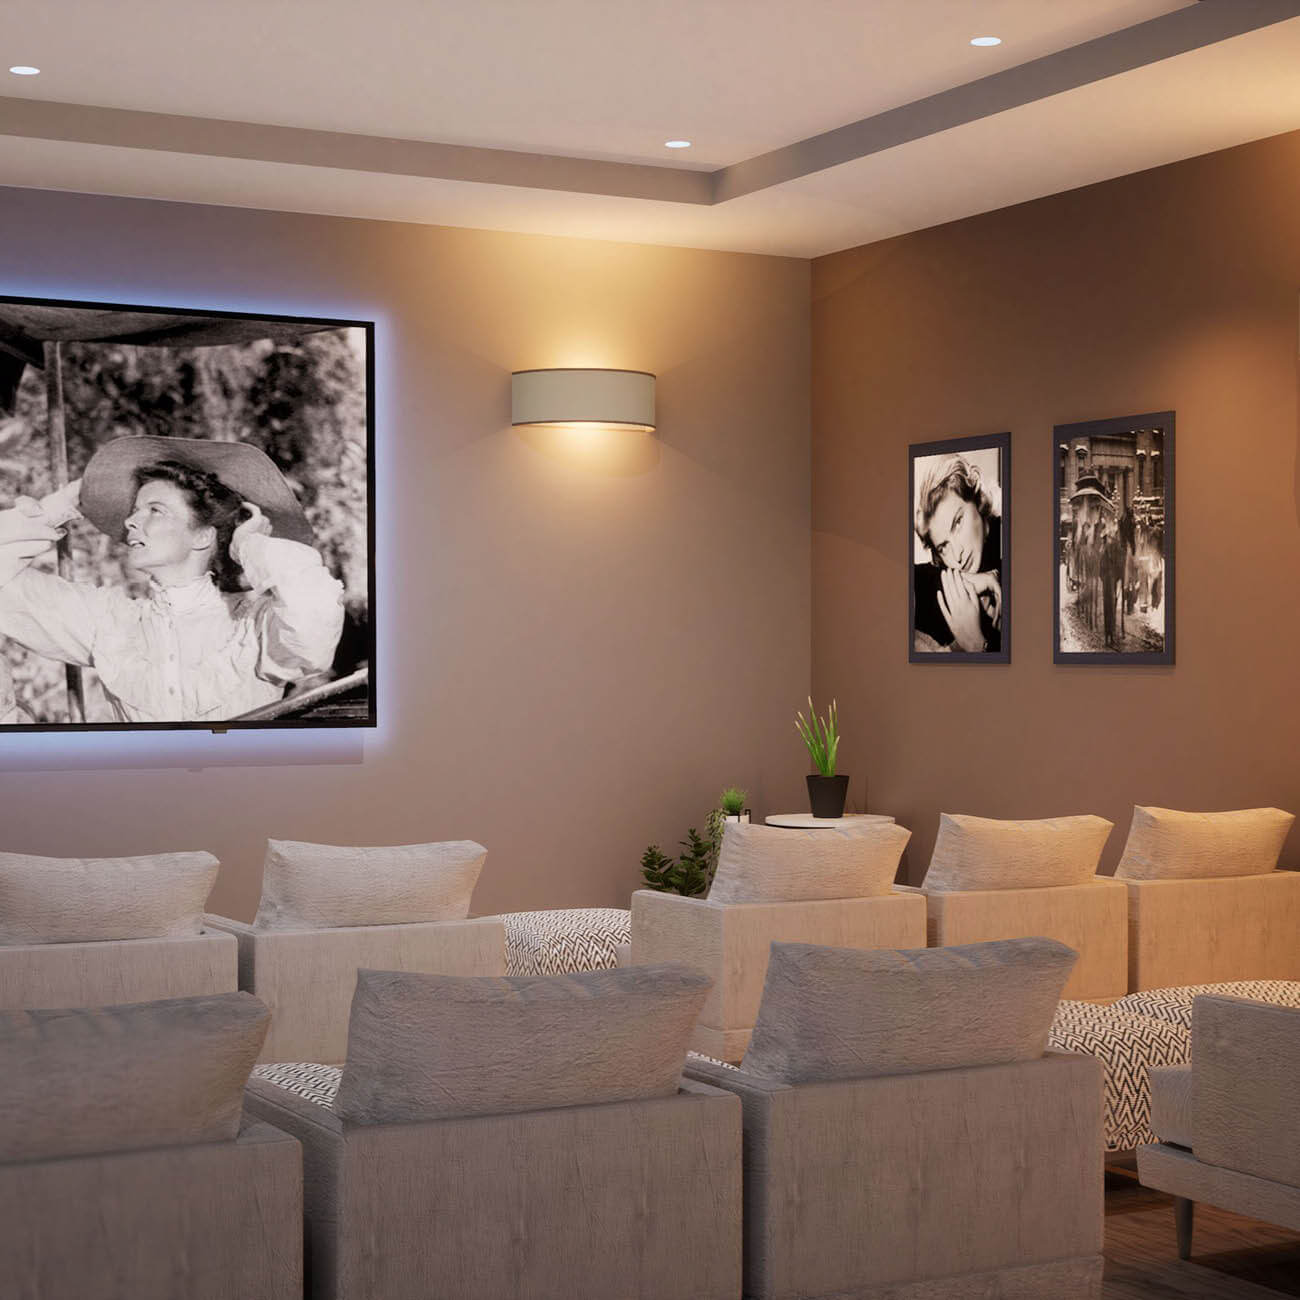 3D rendering of community theater room